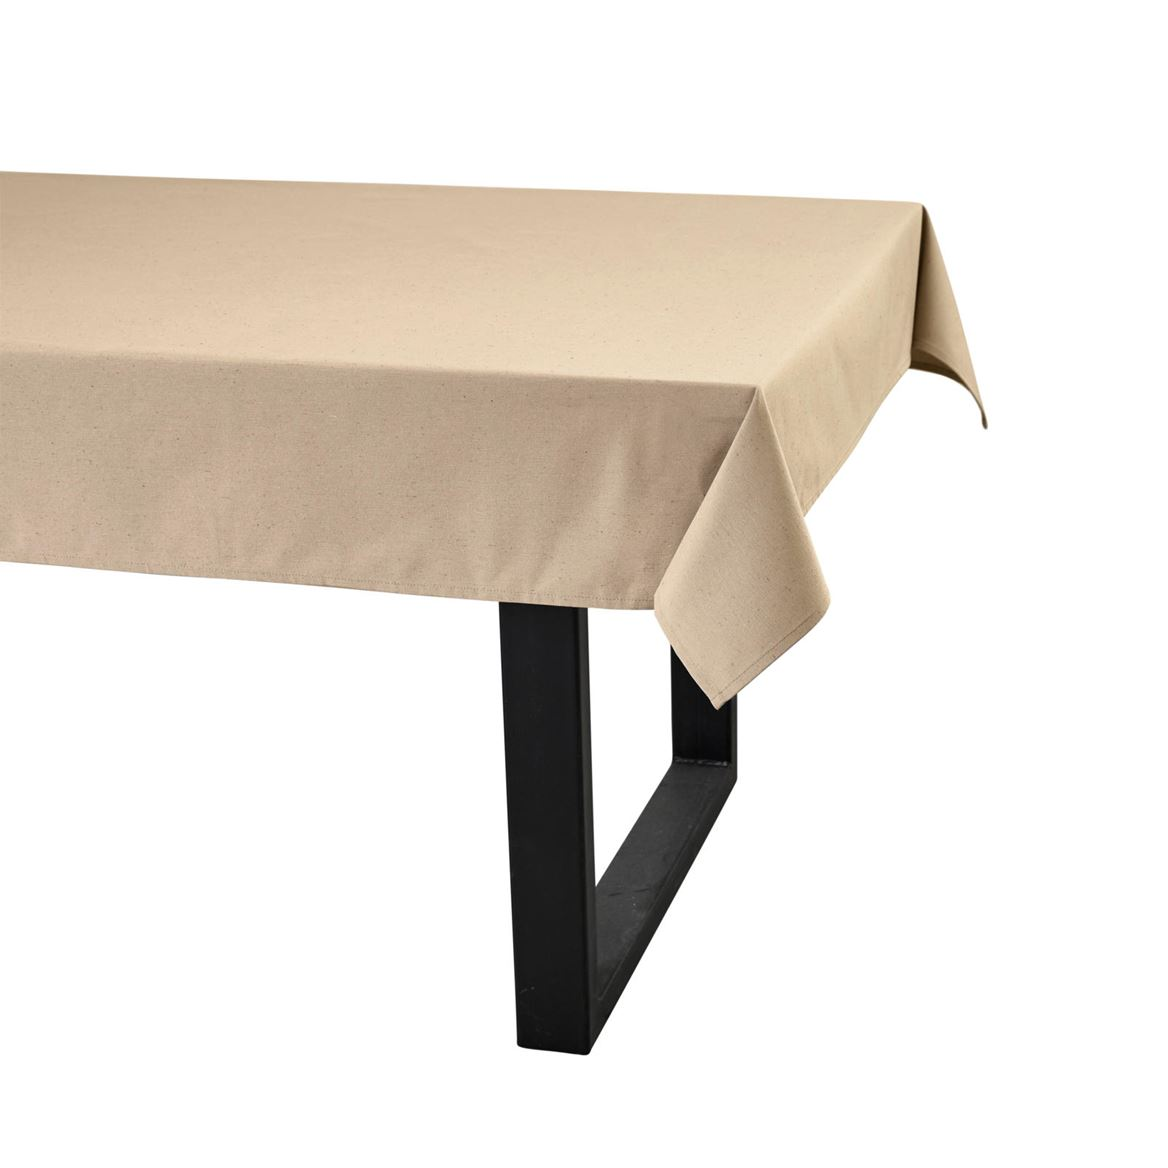 RECYCLE Toalha de mesa taupe W 138 x L 300 cm_recycle-toalha-de-mesa-taupe-w-138-x-l-300-cm